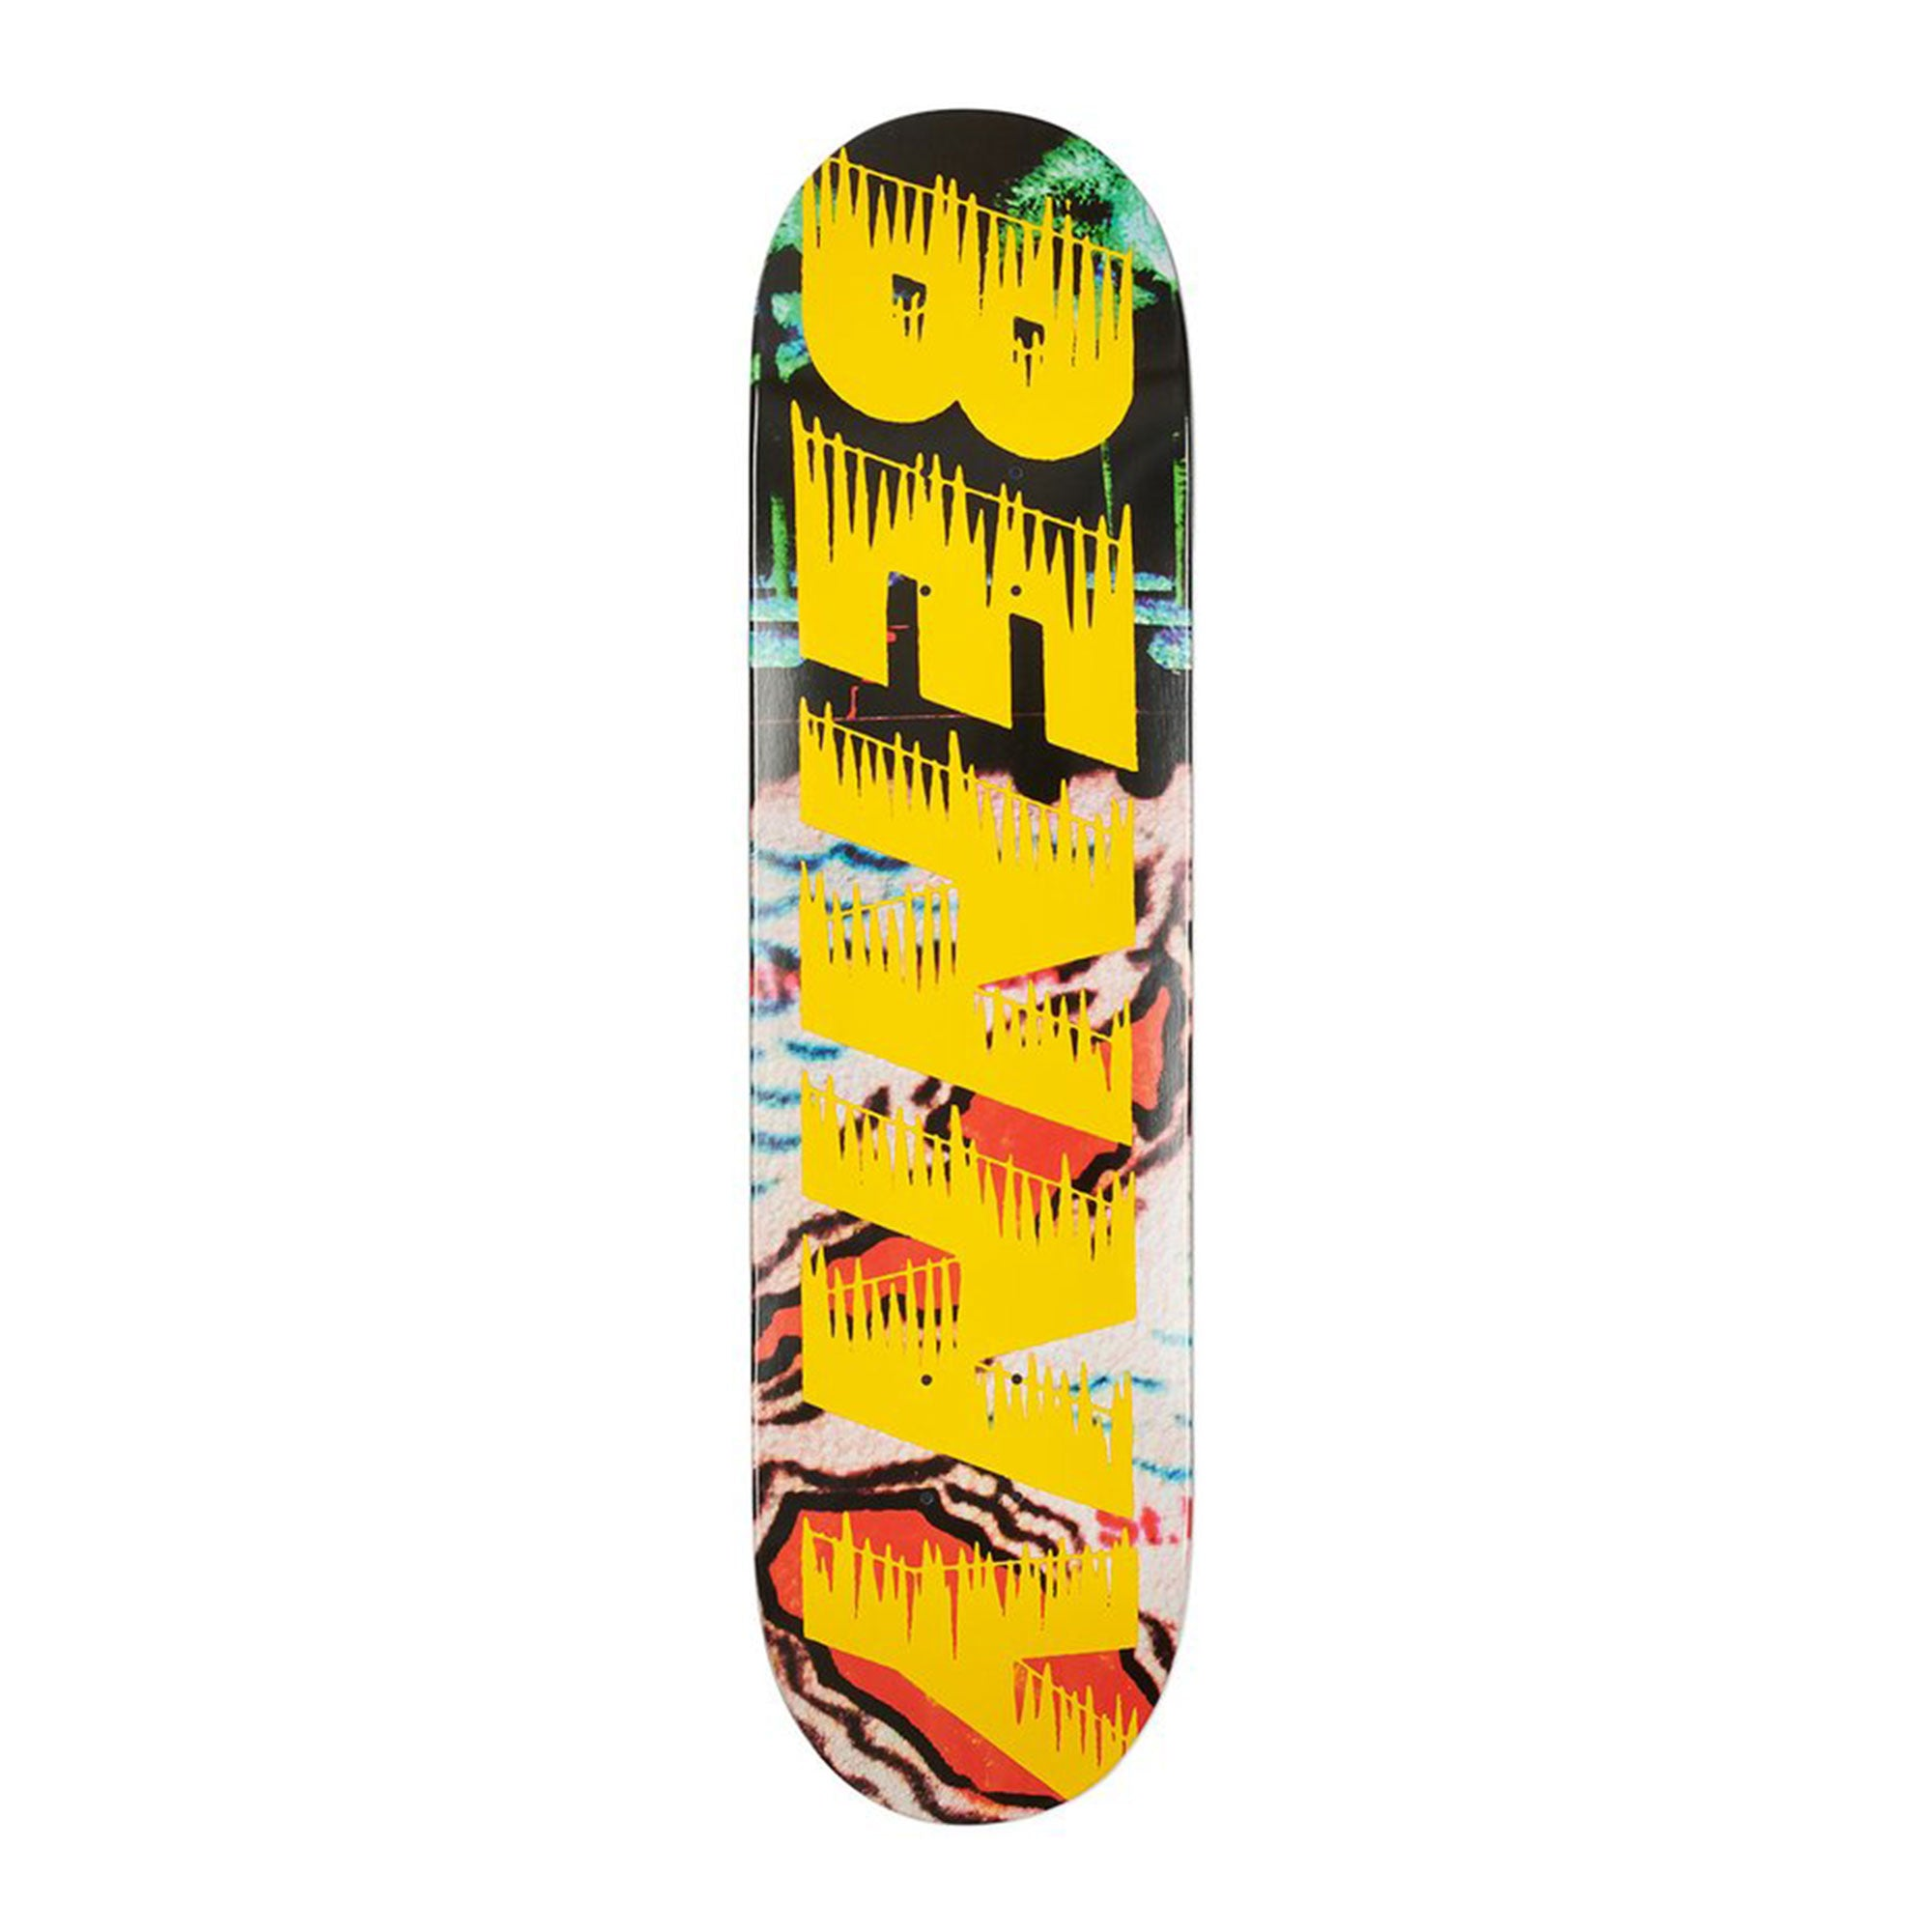 Palace Fairfax S21 Deck Product Photo #1